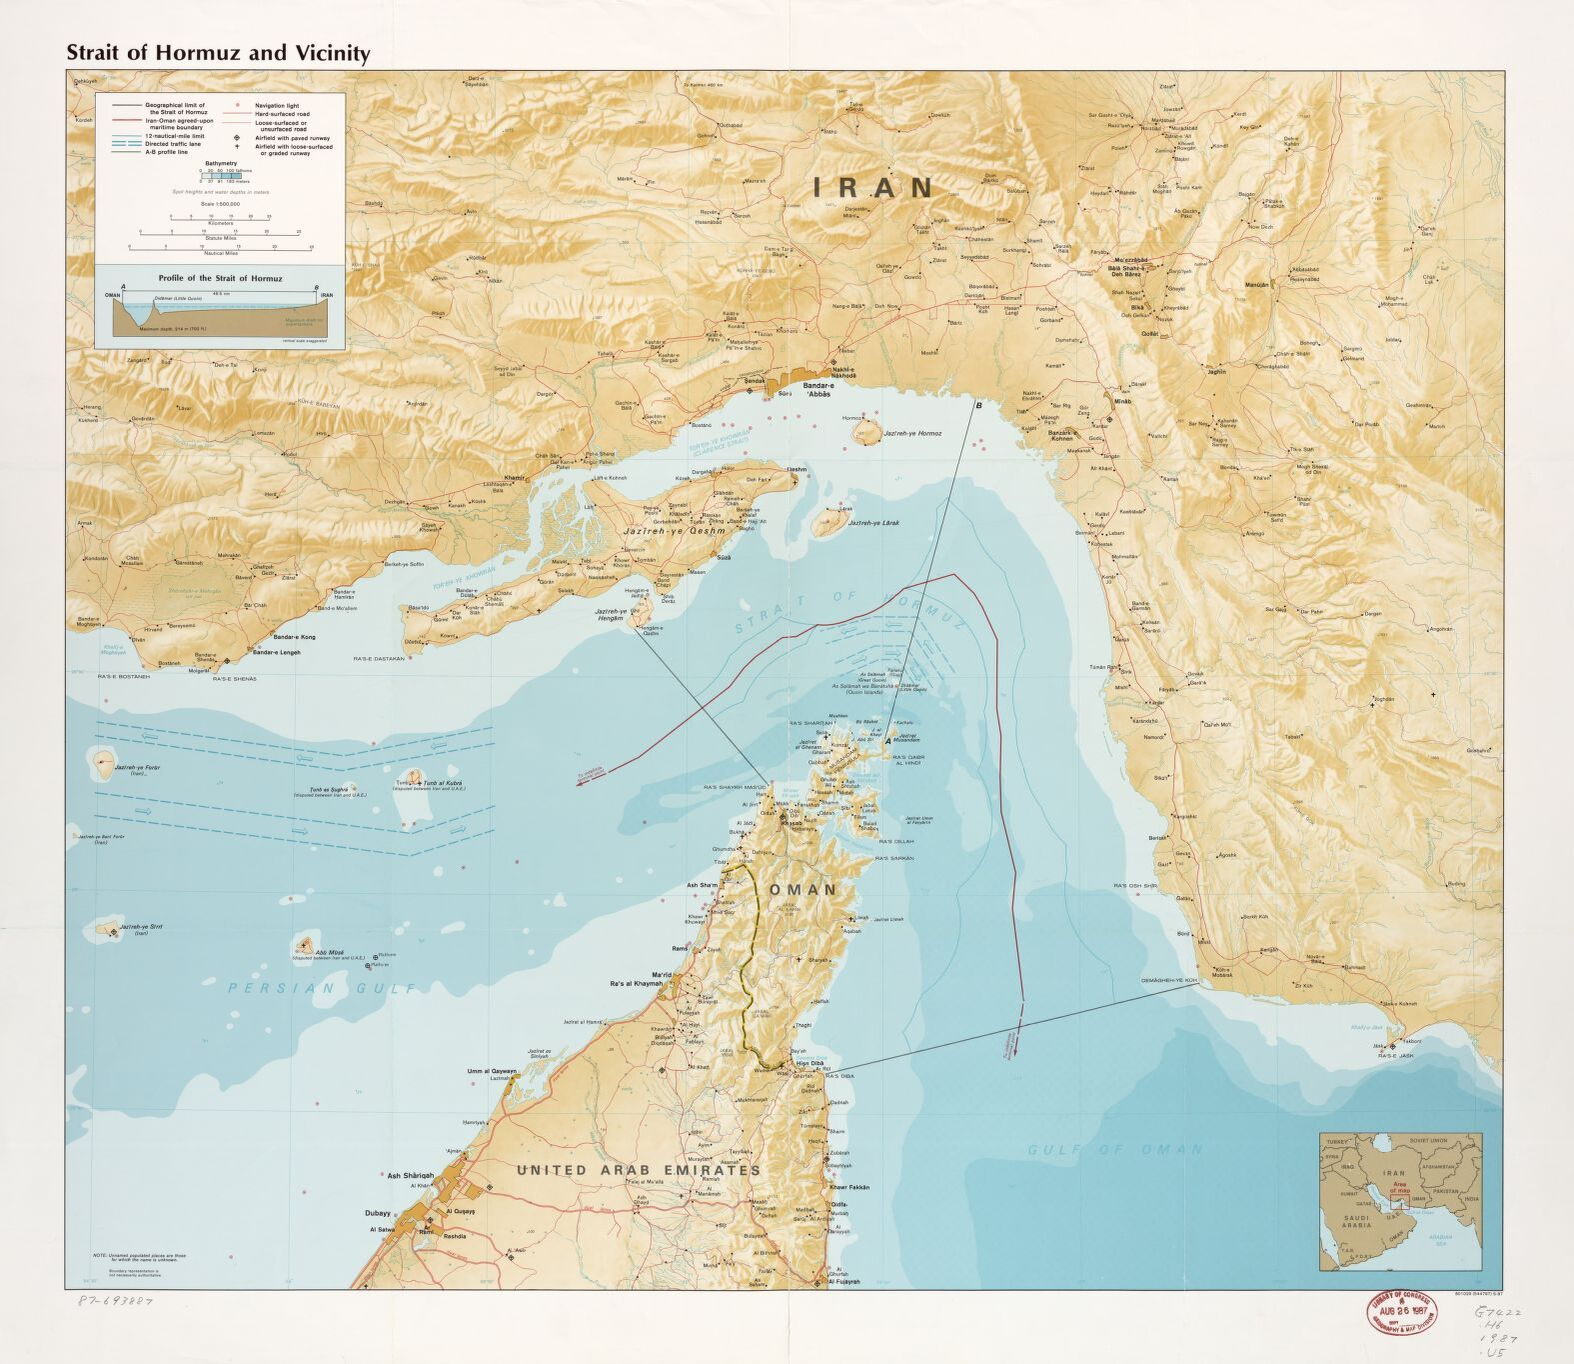 I high resolution topological map of the Strait of Hormuz